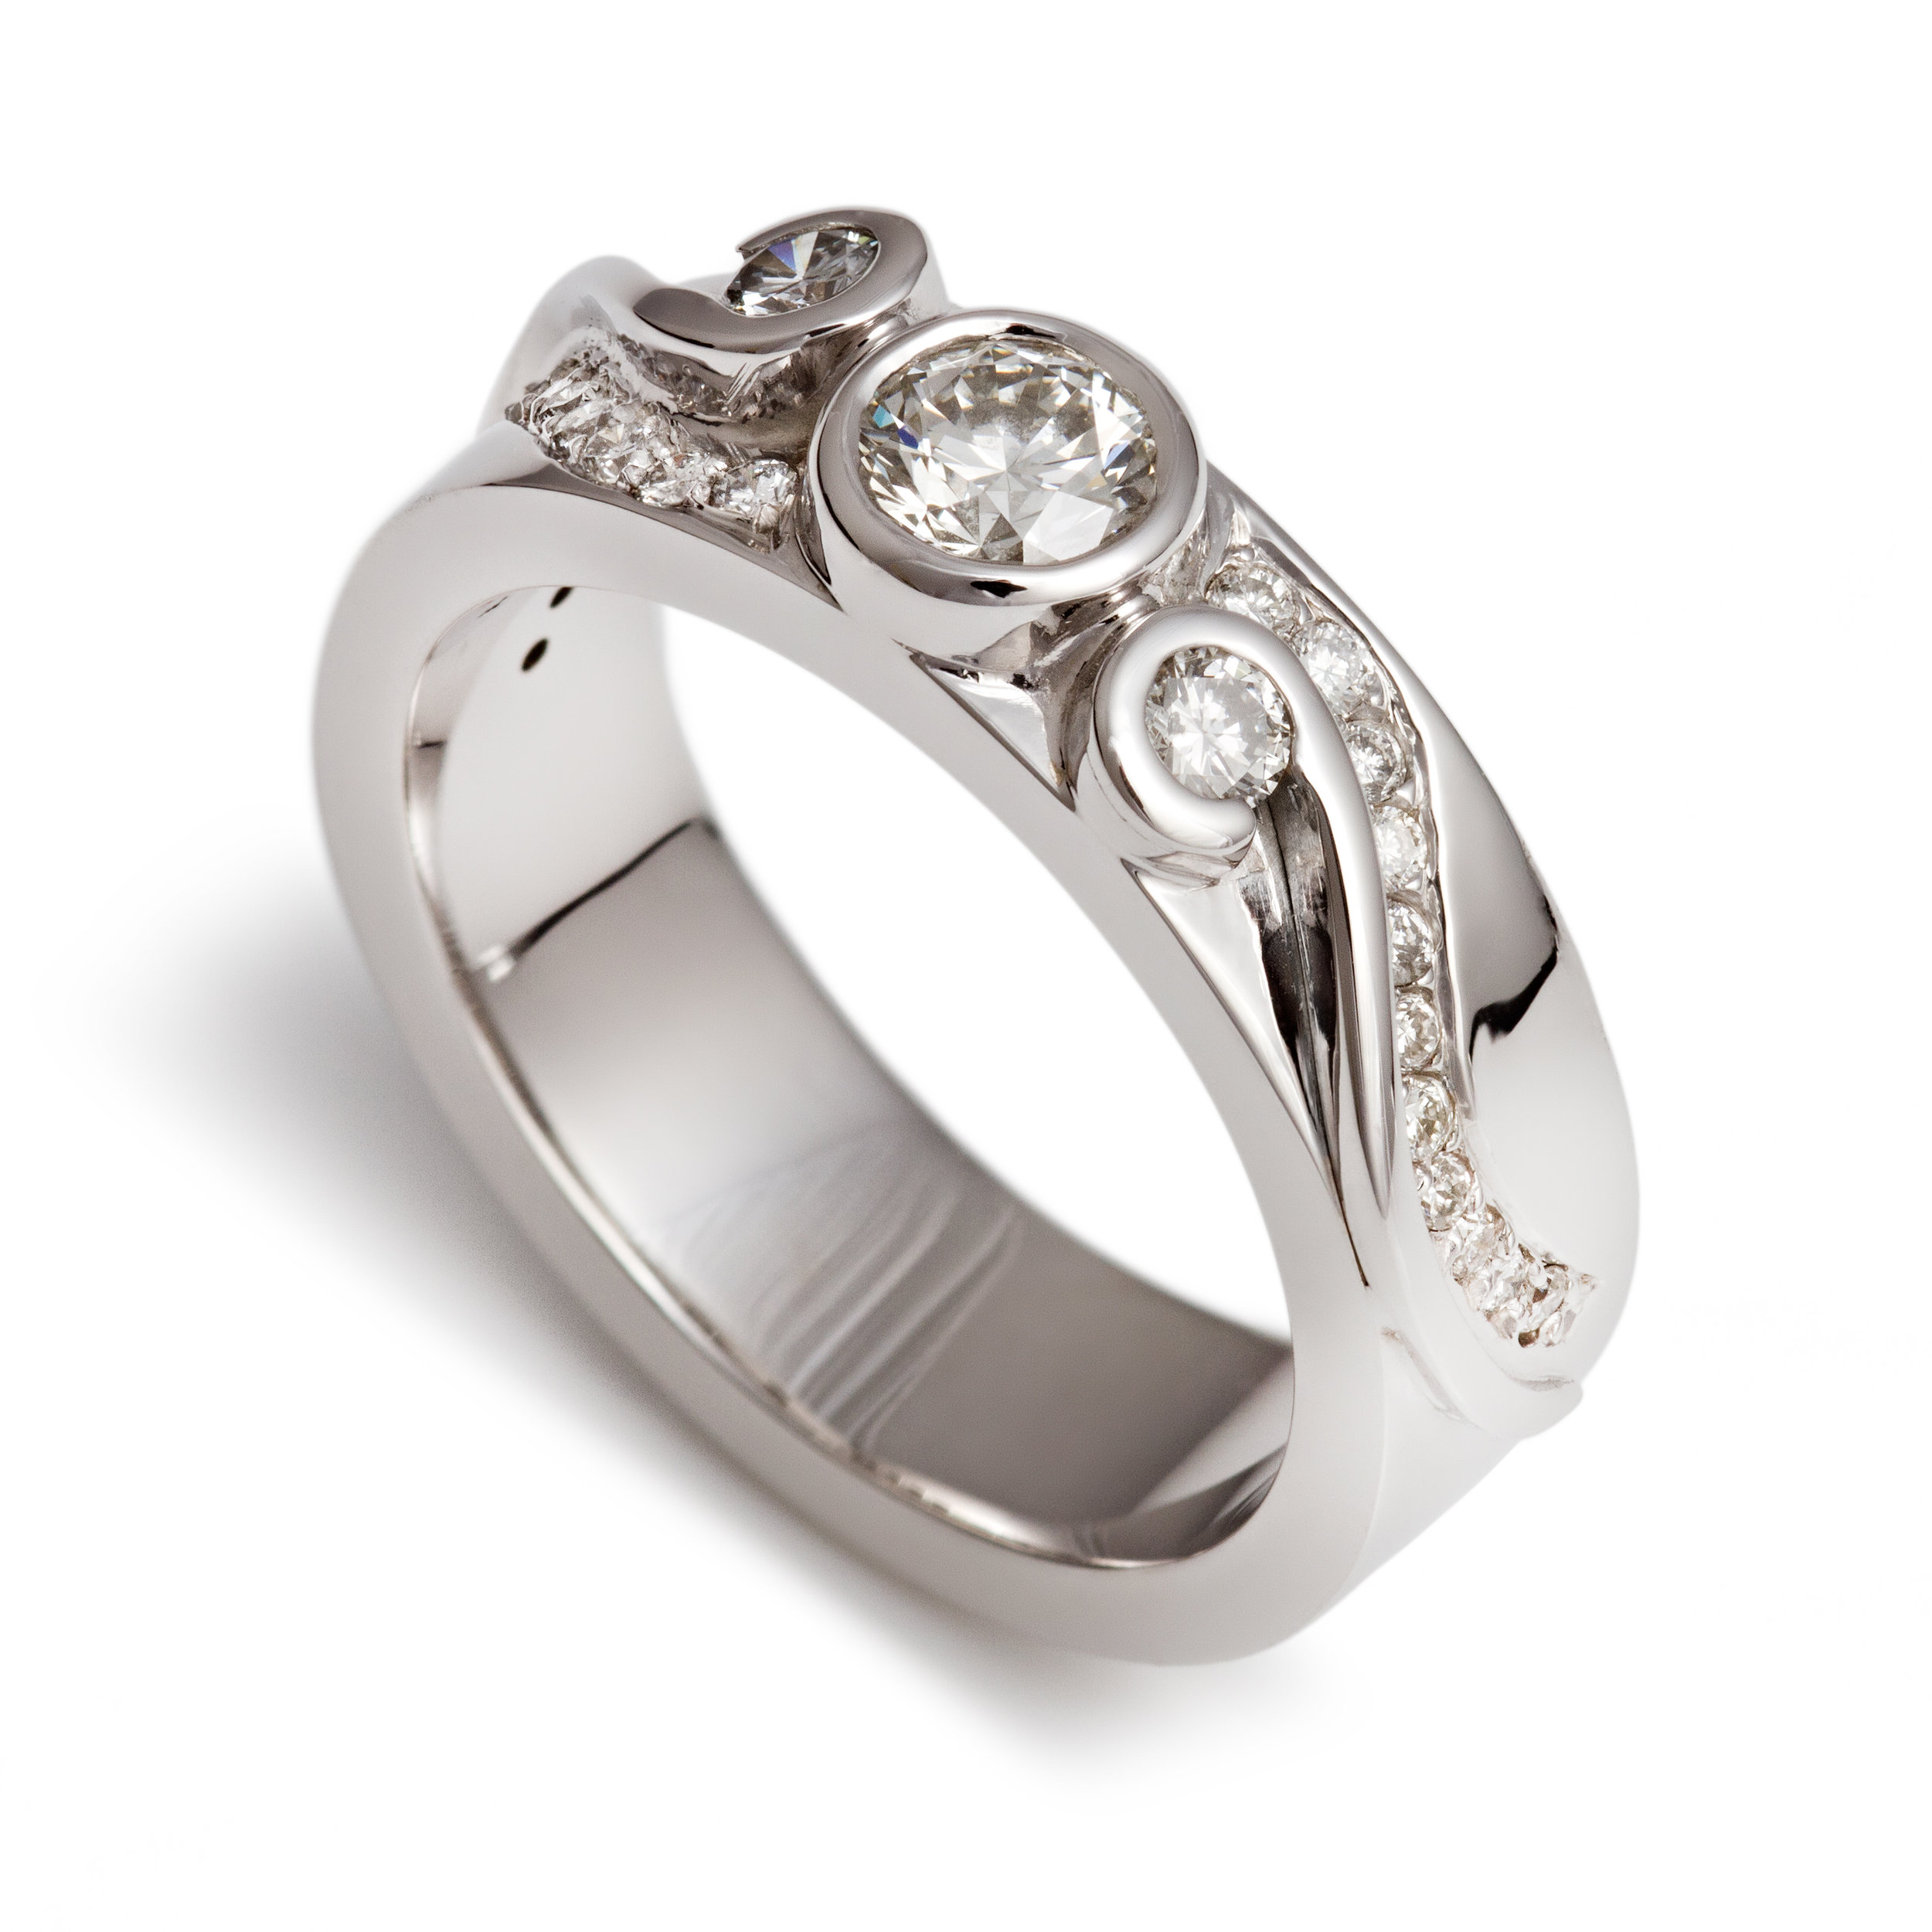 Bespoke 18ct white gold and diamond ring commission